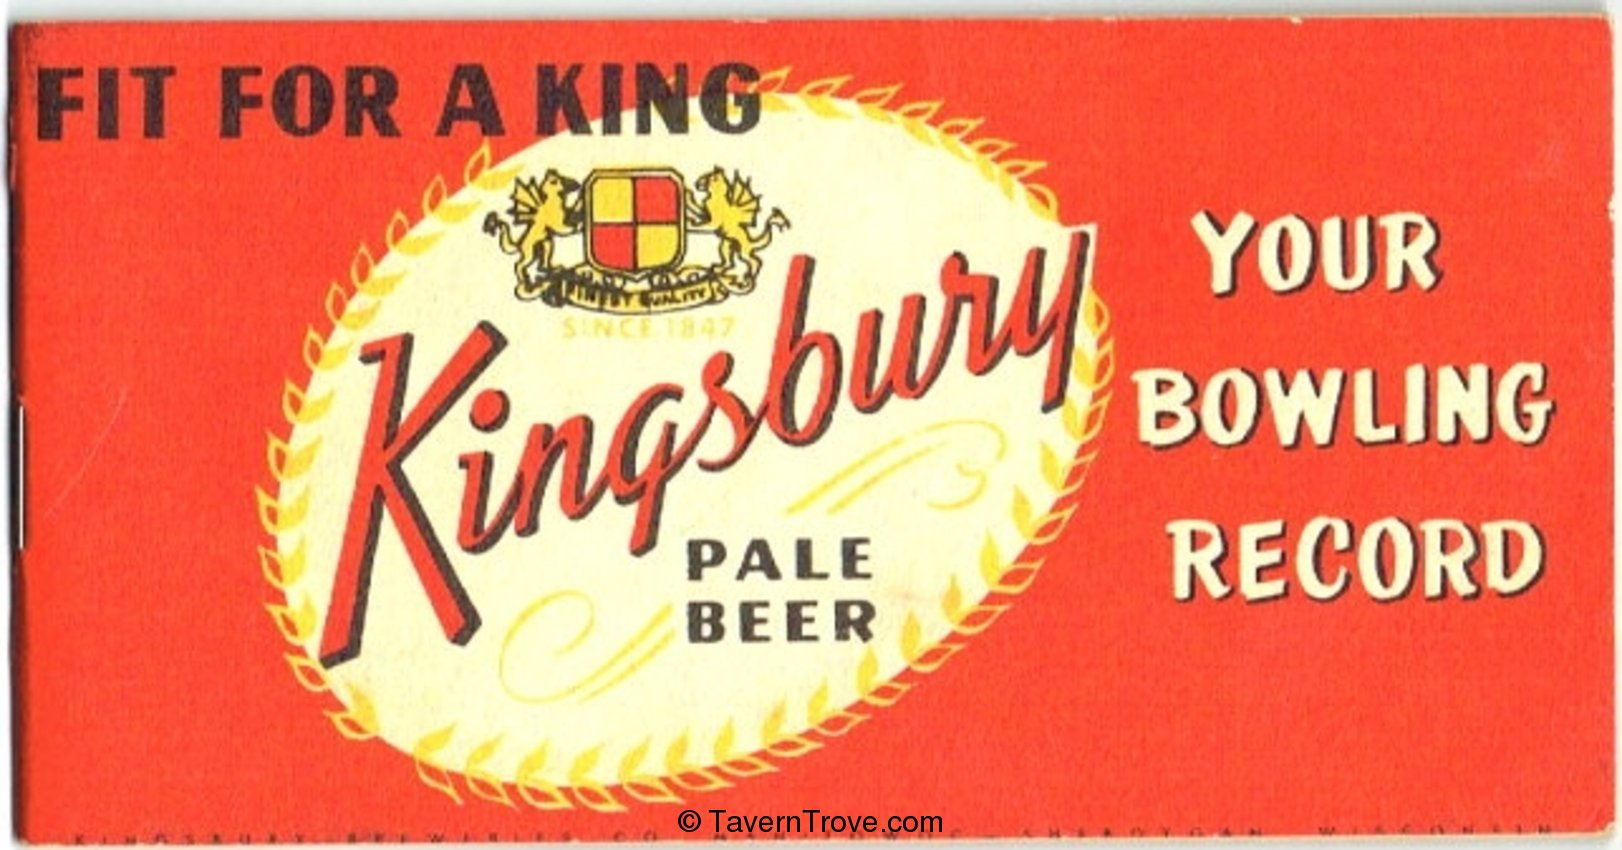 Kingsbury Beer Bowling Record Book